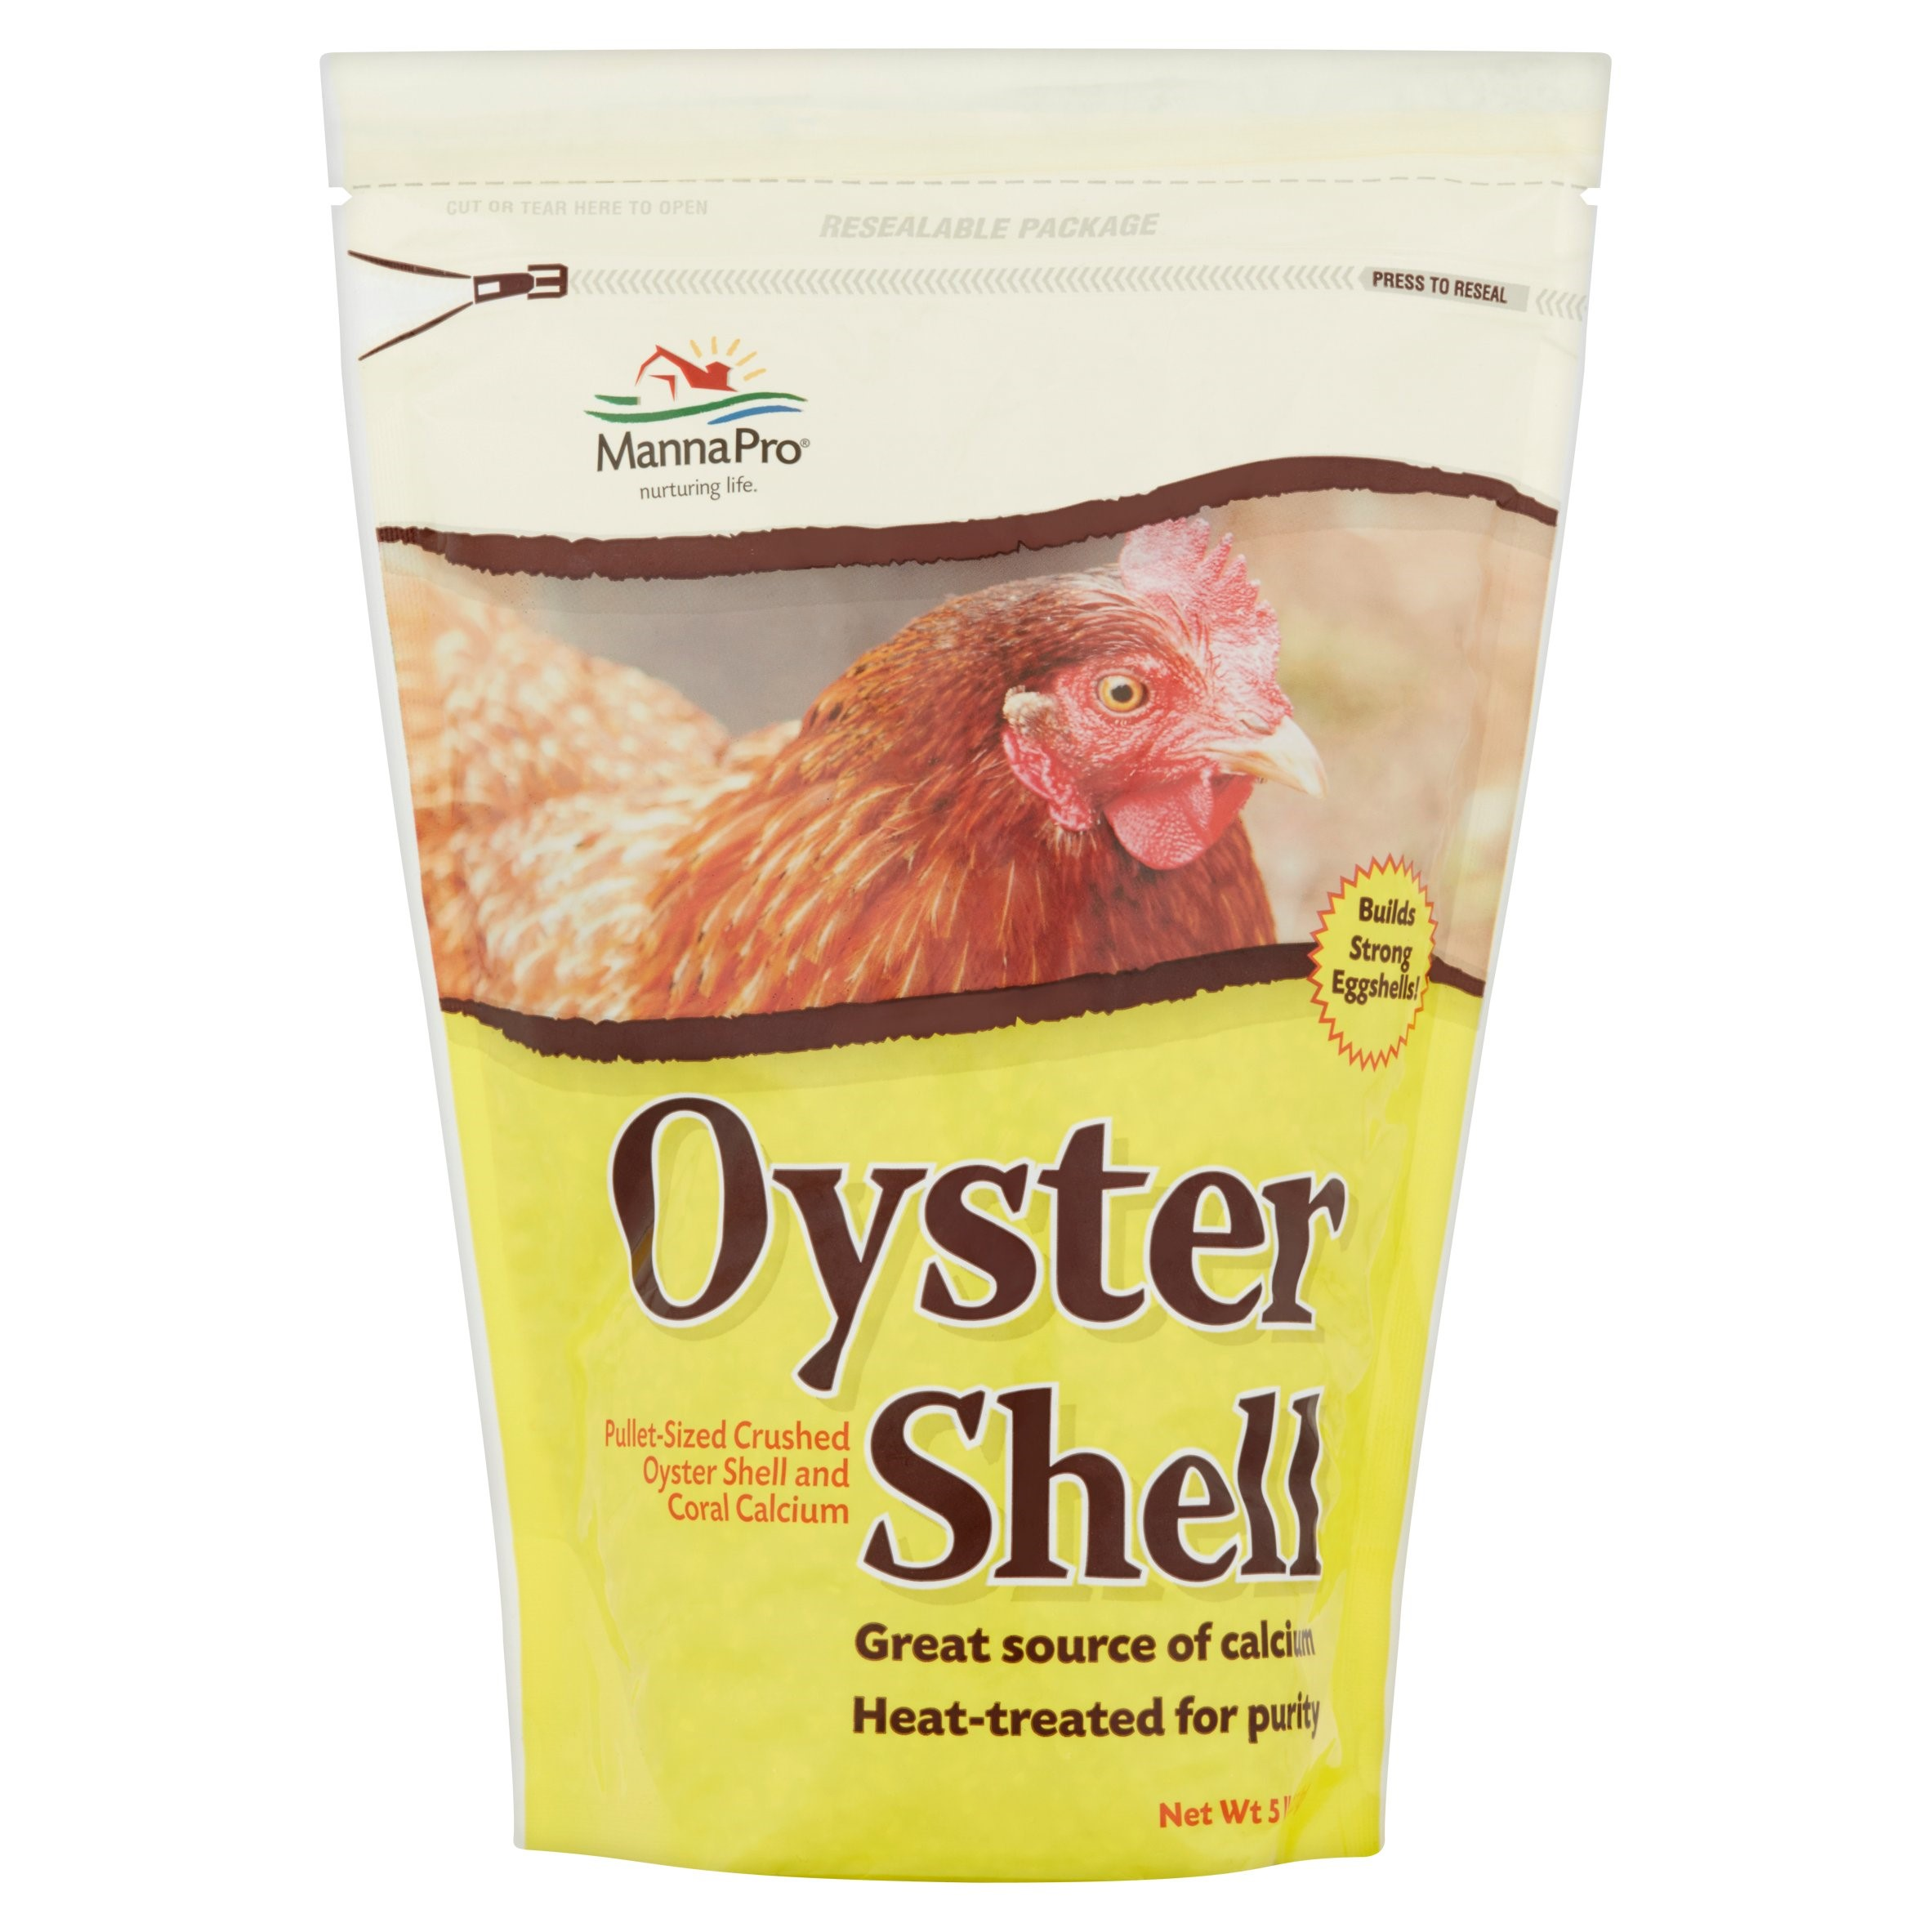 Manna Pro Crushed Oyster Shell for Chickens, 5 lbs.